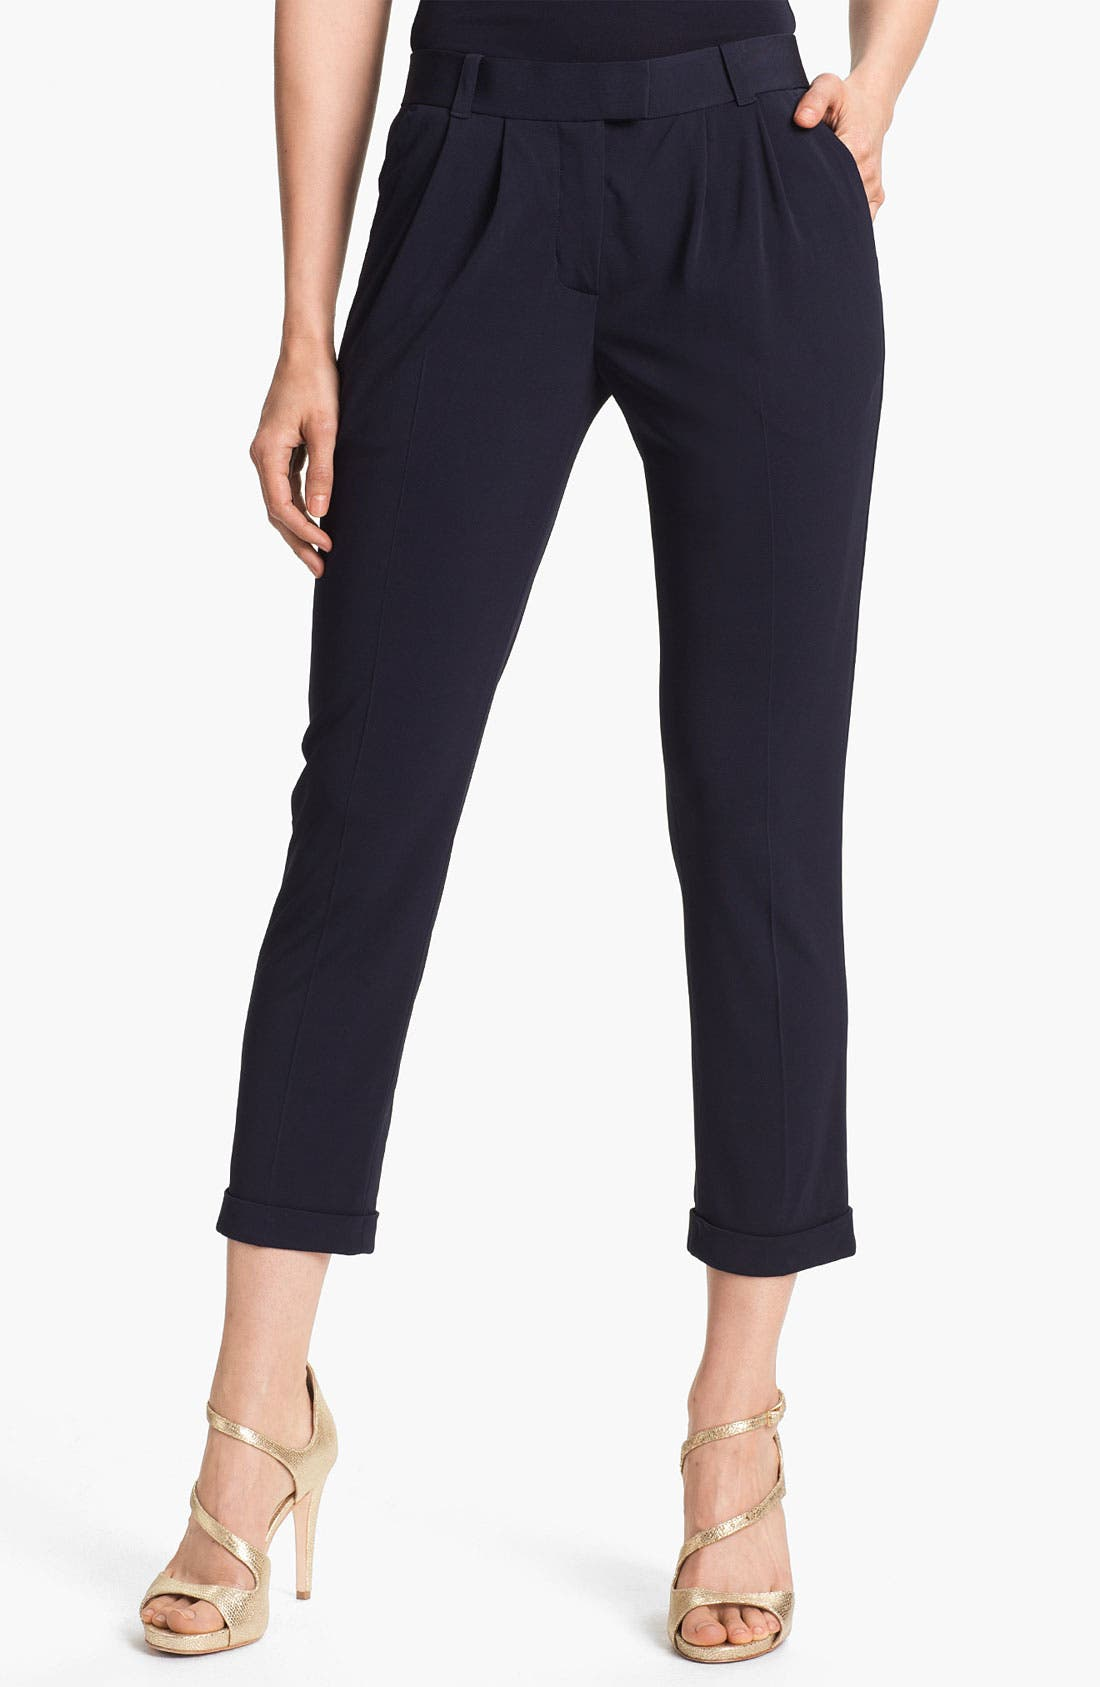 Alternate Image 1 Selected - Tory Burch 'Haley' Crop Pants